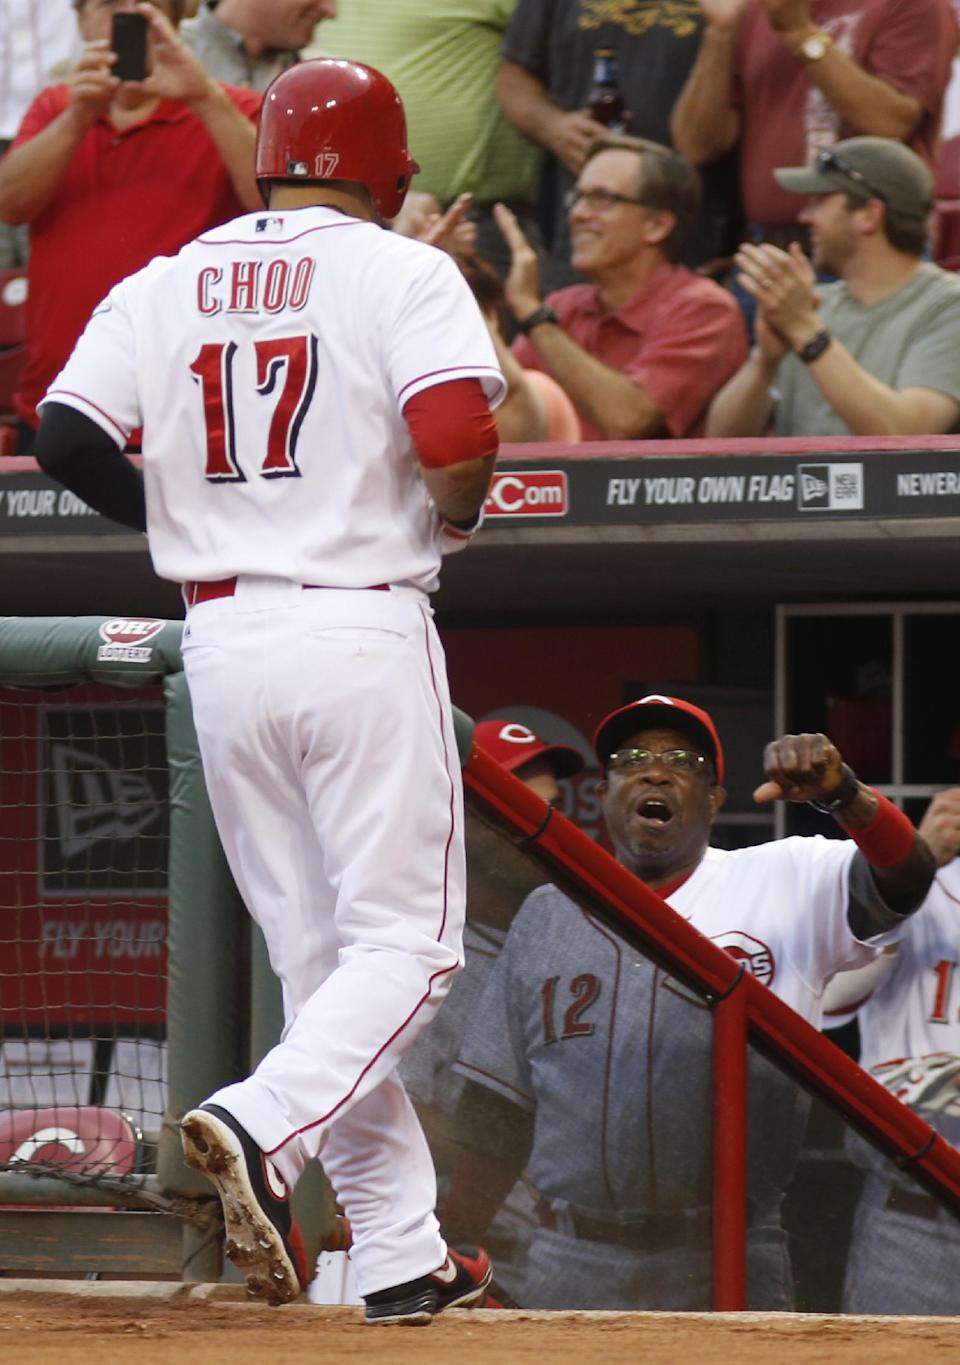 Reds hold on for 10-7 win over Diamondbacks